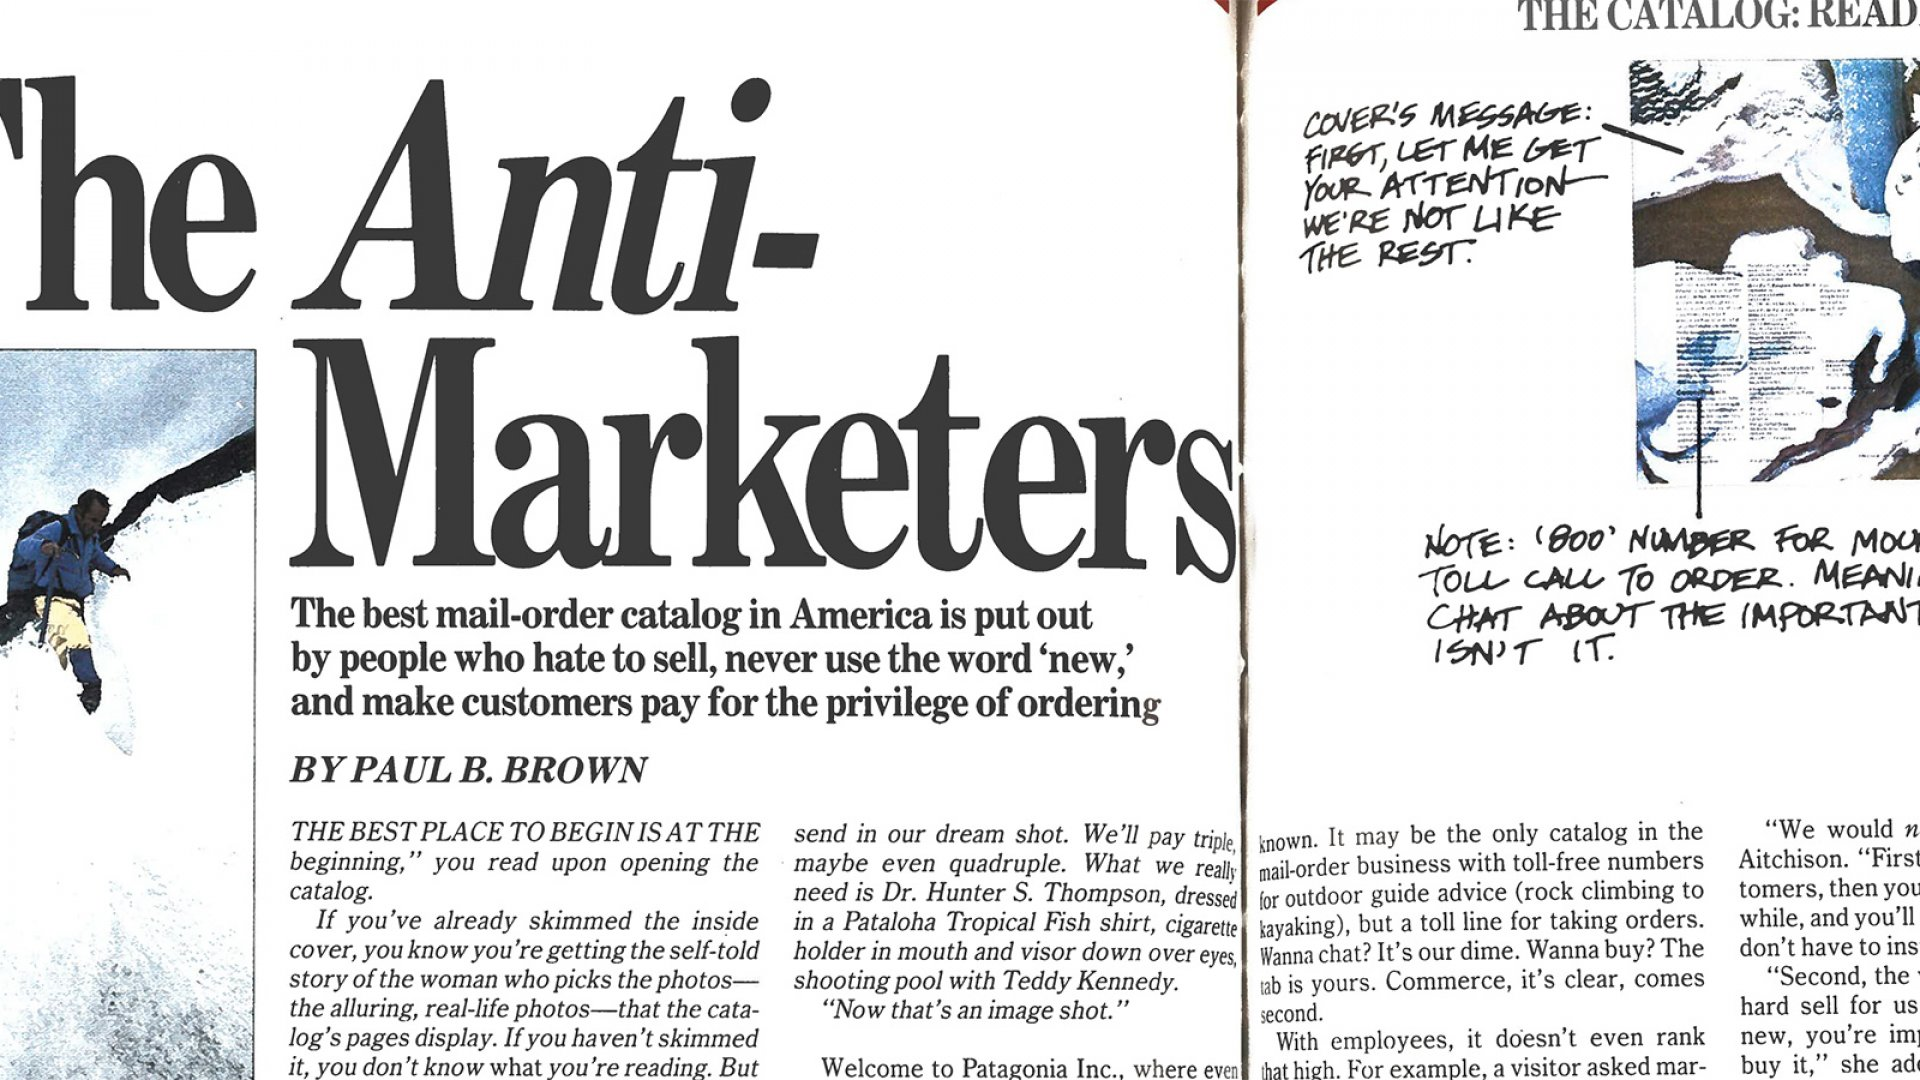 In 1988, Patagonia Was Full of Anti-Marketers